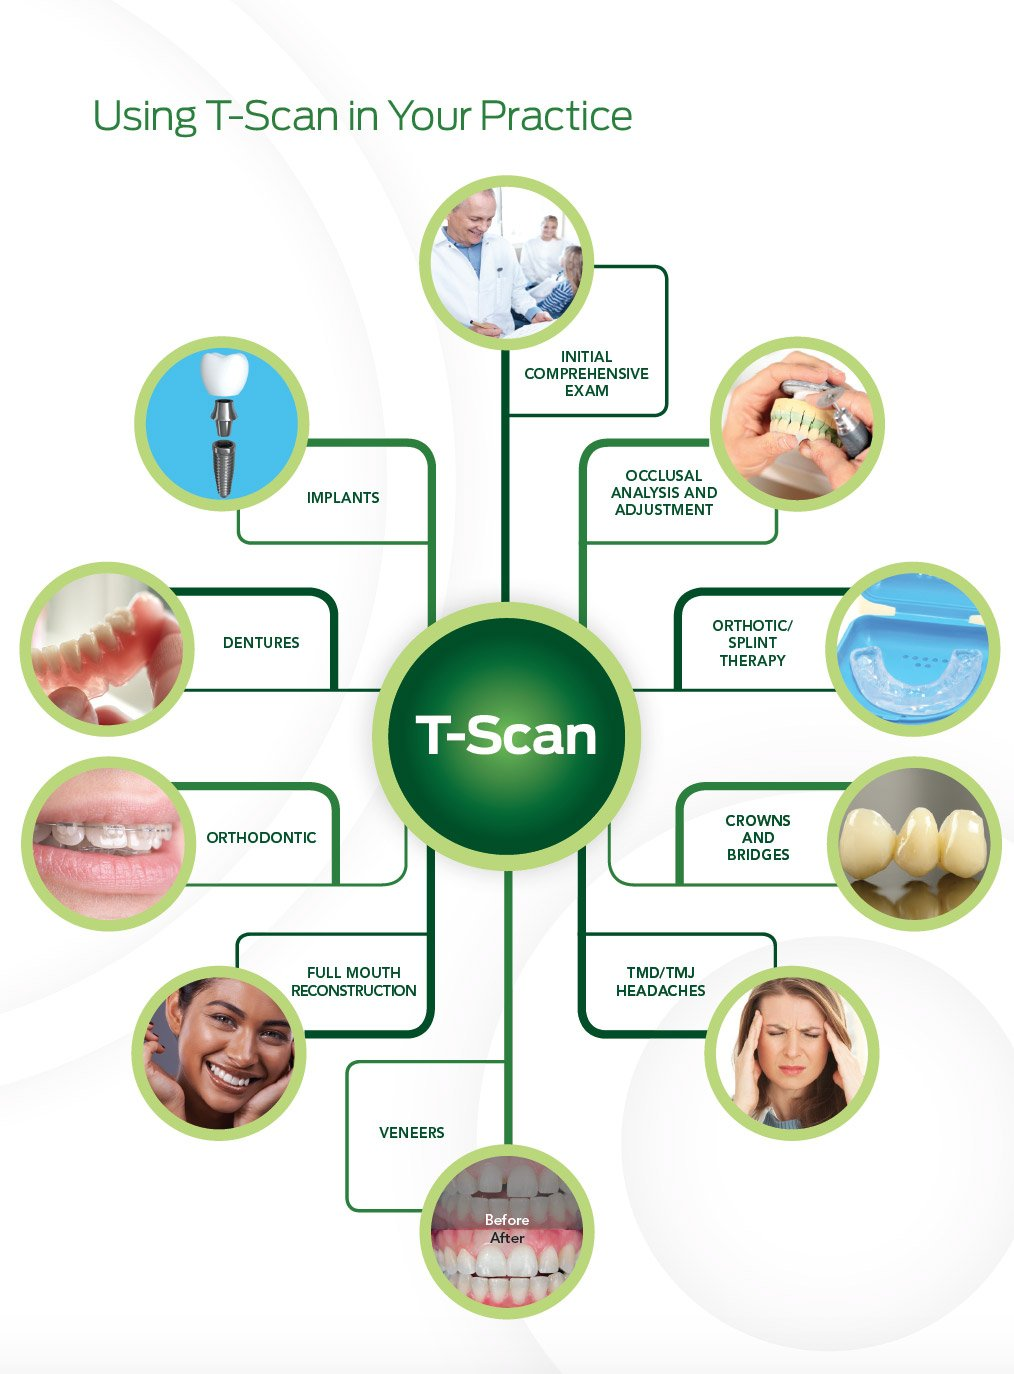 T-Scan